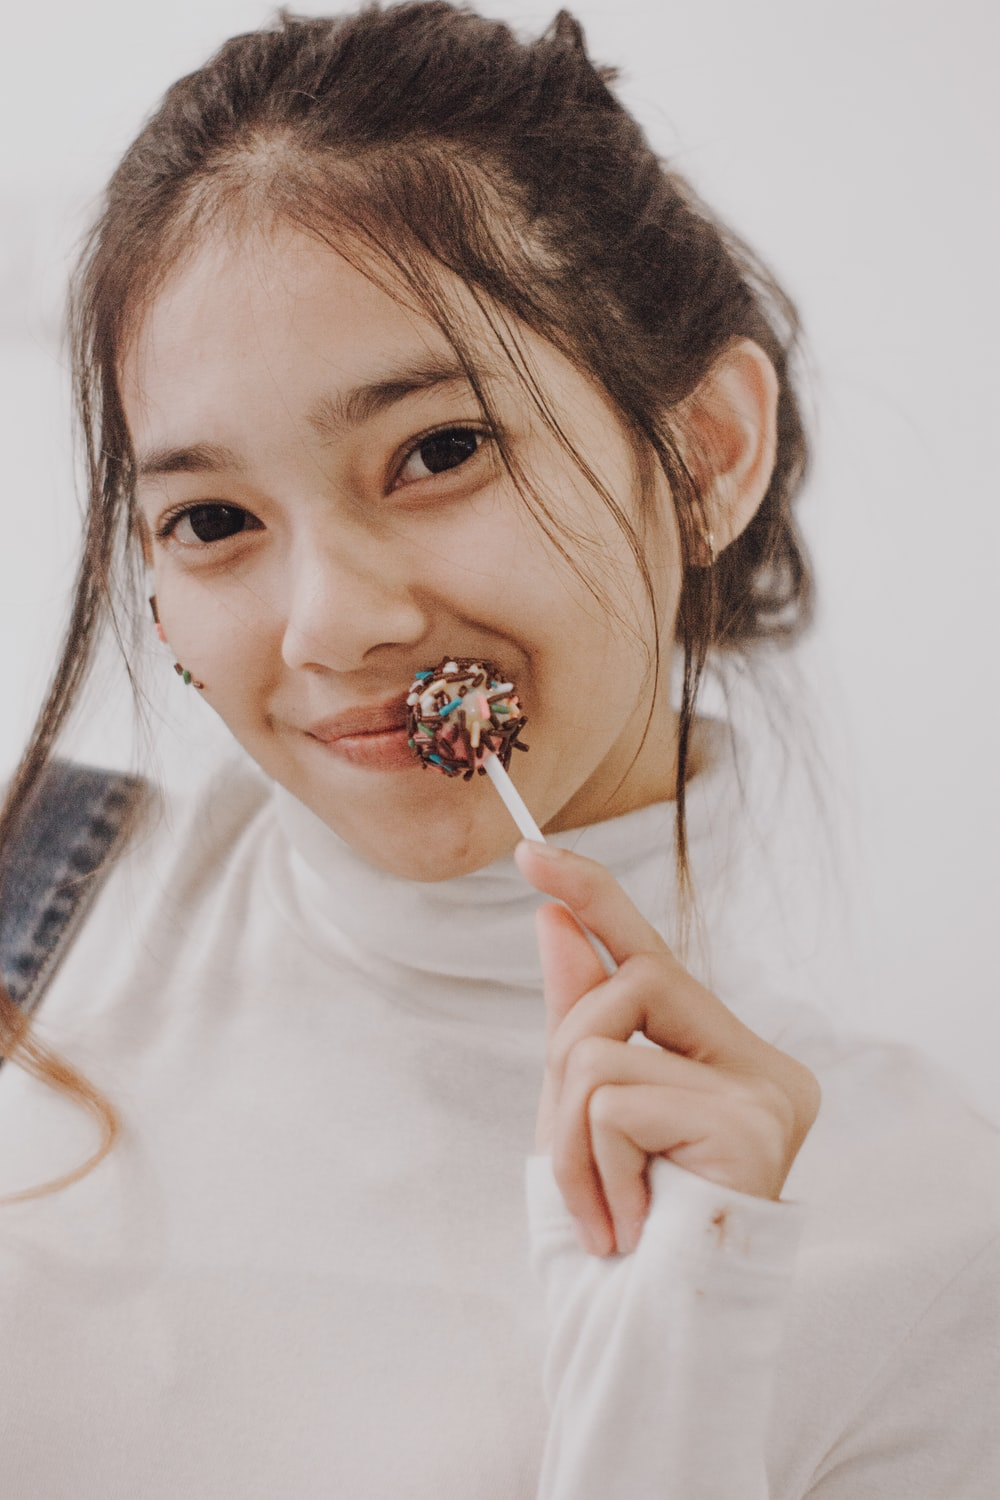 girl in white crew neck shirt holding brown and white lollipop